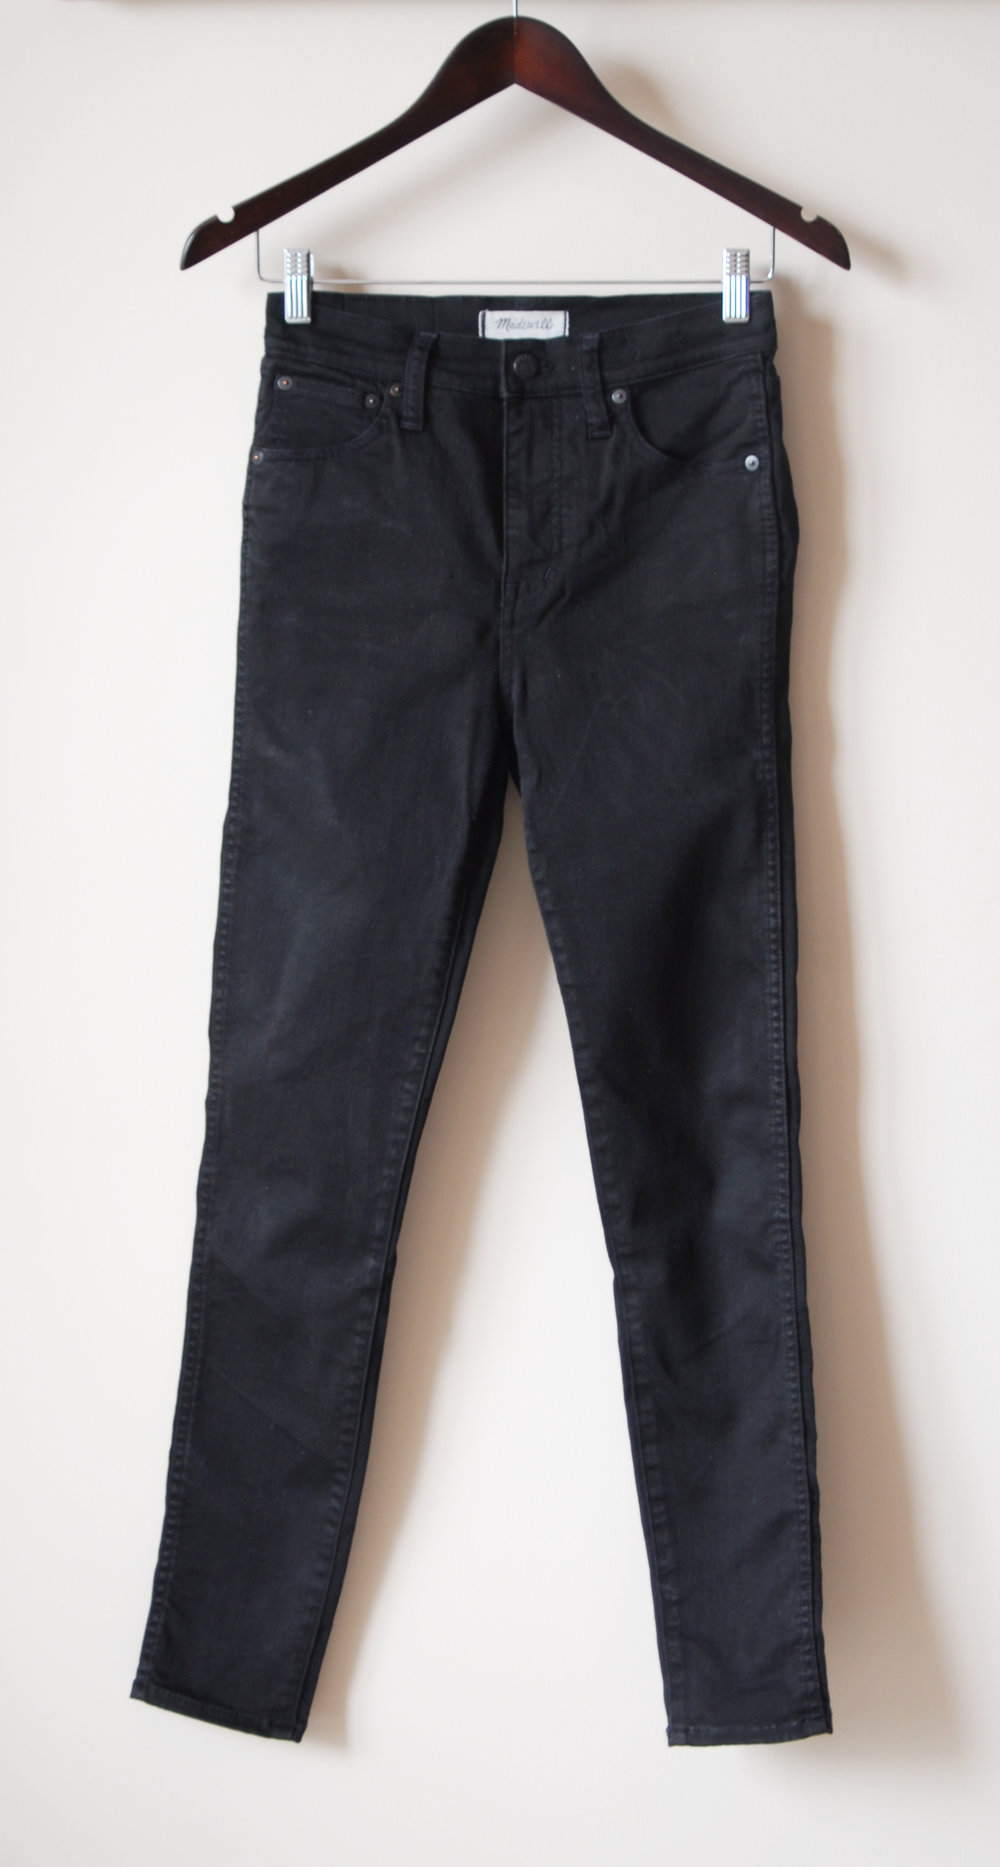 Madewell Black Denim.jpg